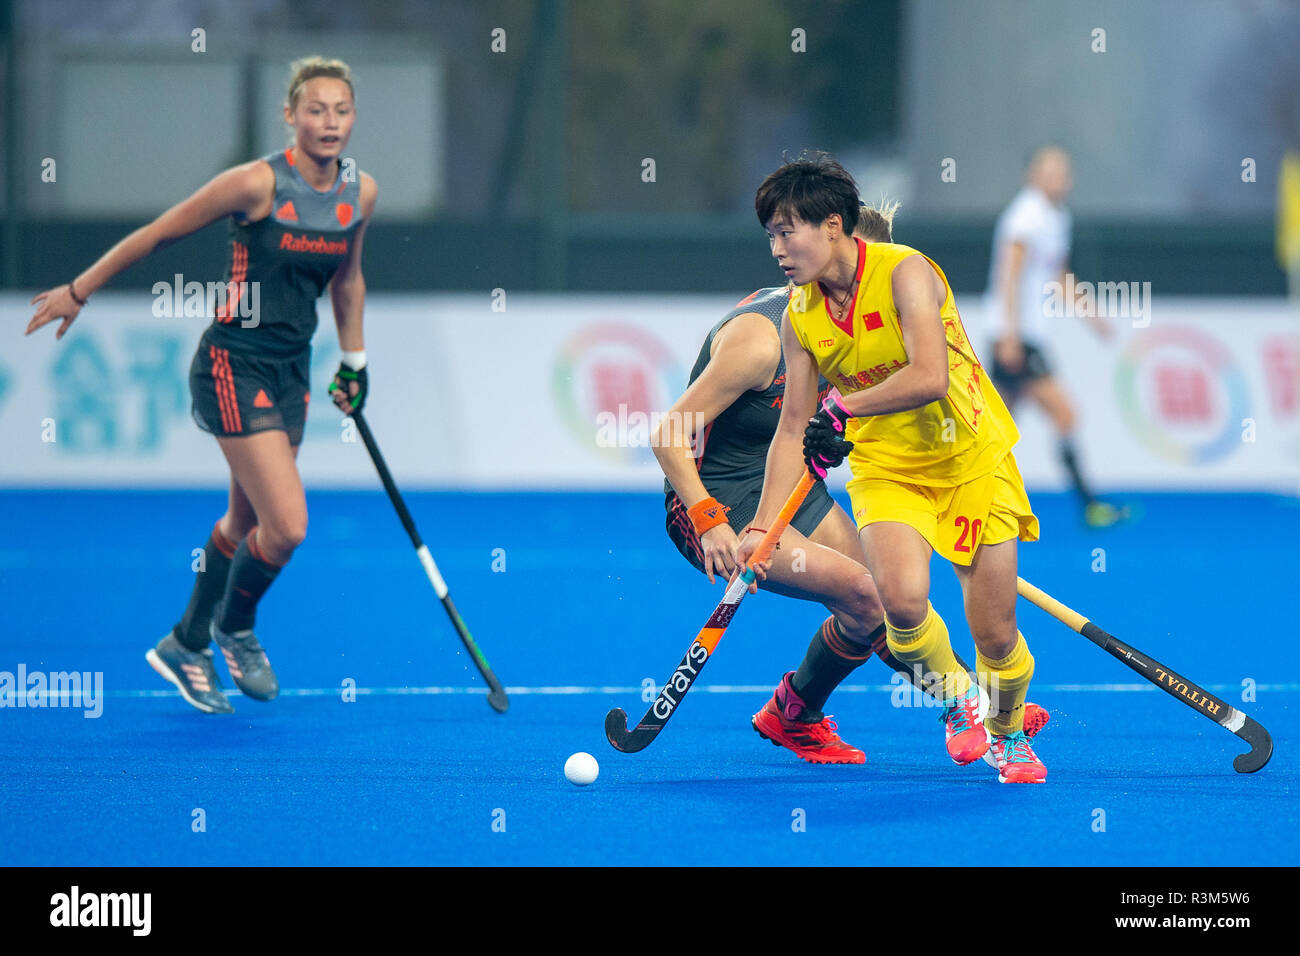 Changzhou, China 24 November 2018 Champions Trophy: Netherlands v China Jiangxin He of China Credit: Orange Pictures vof/Alamy Live News Stock Photo